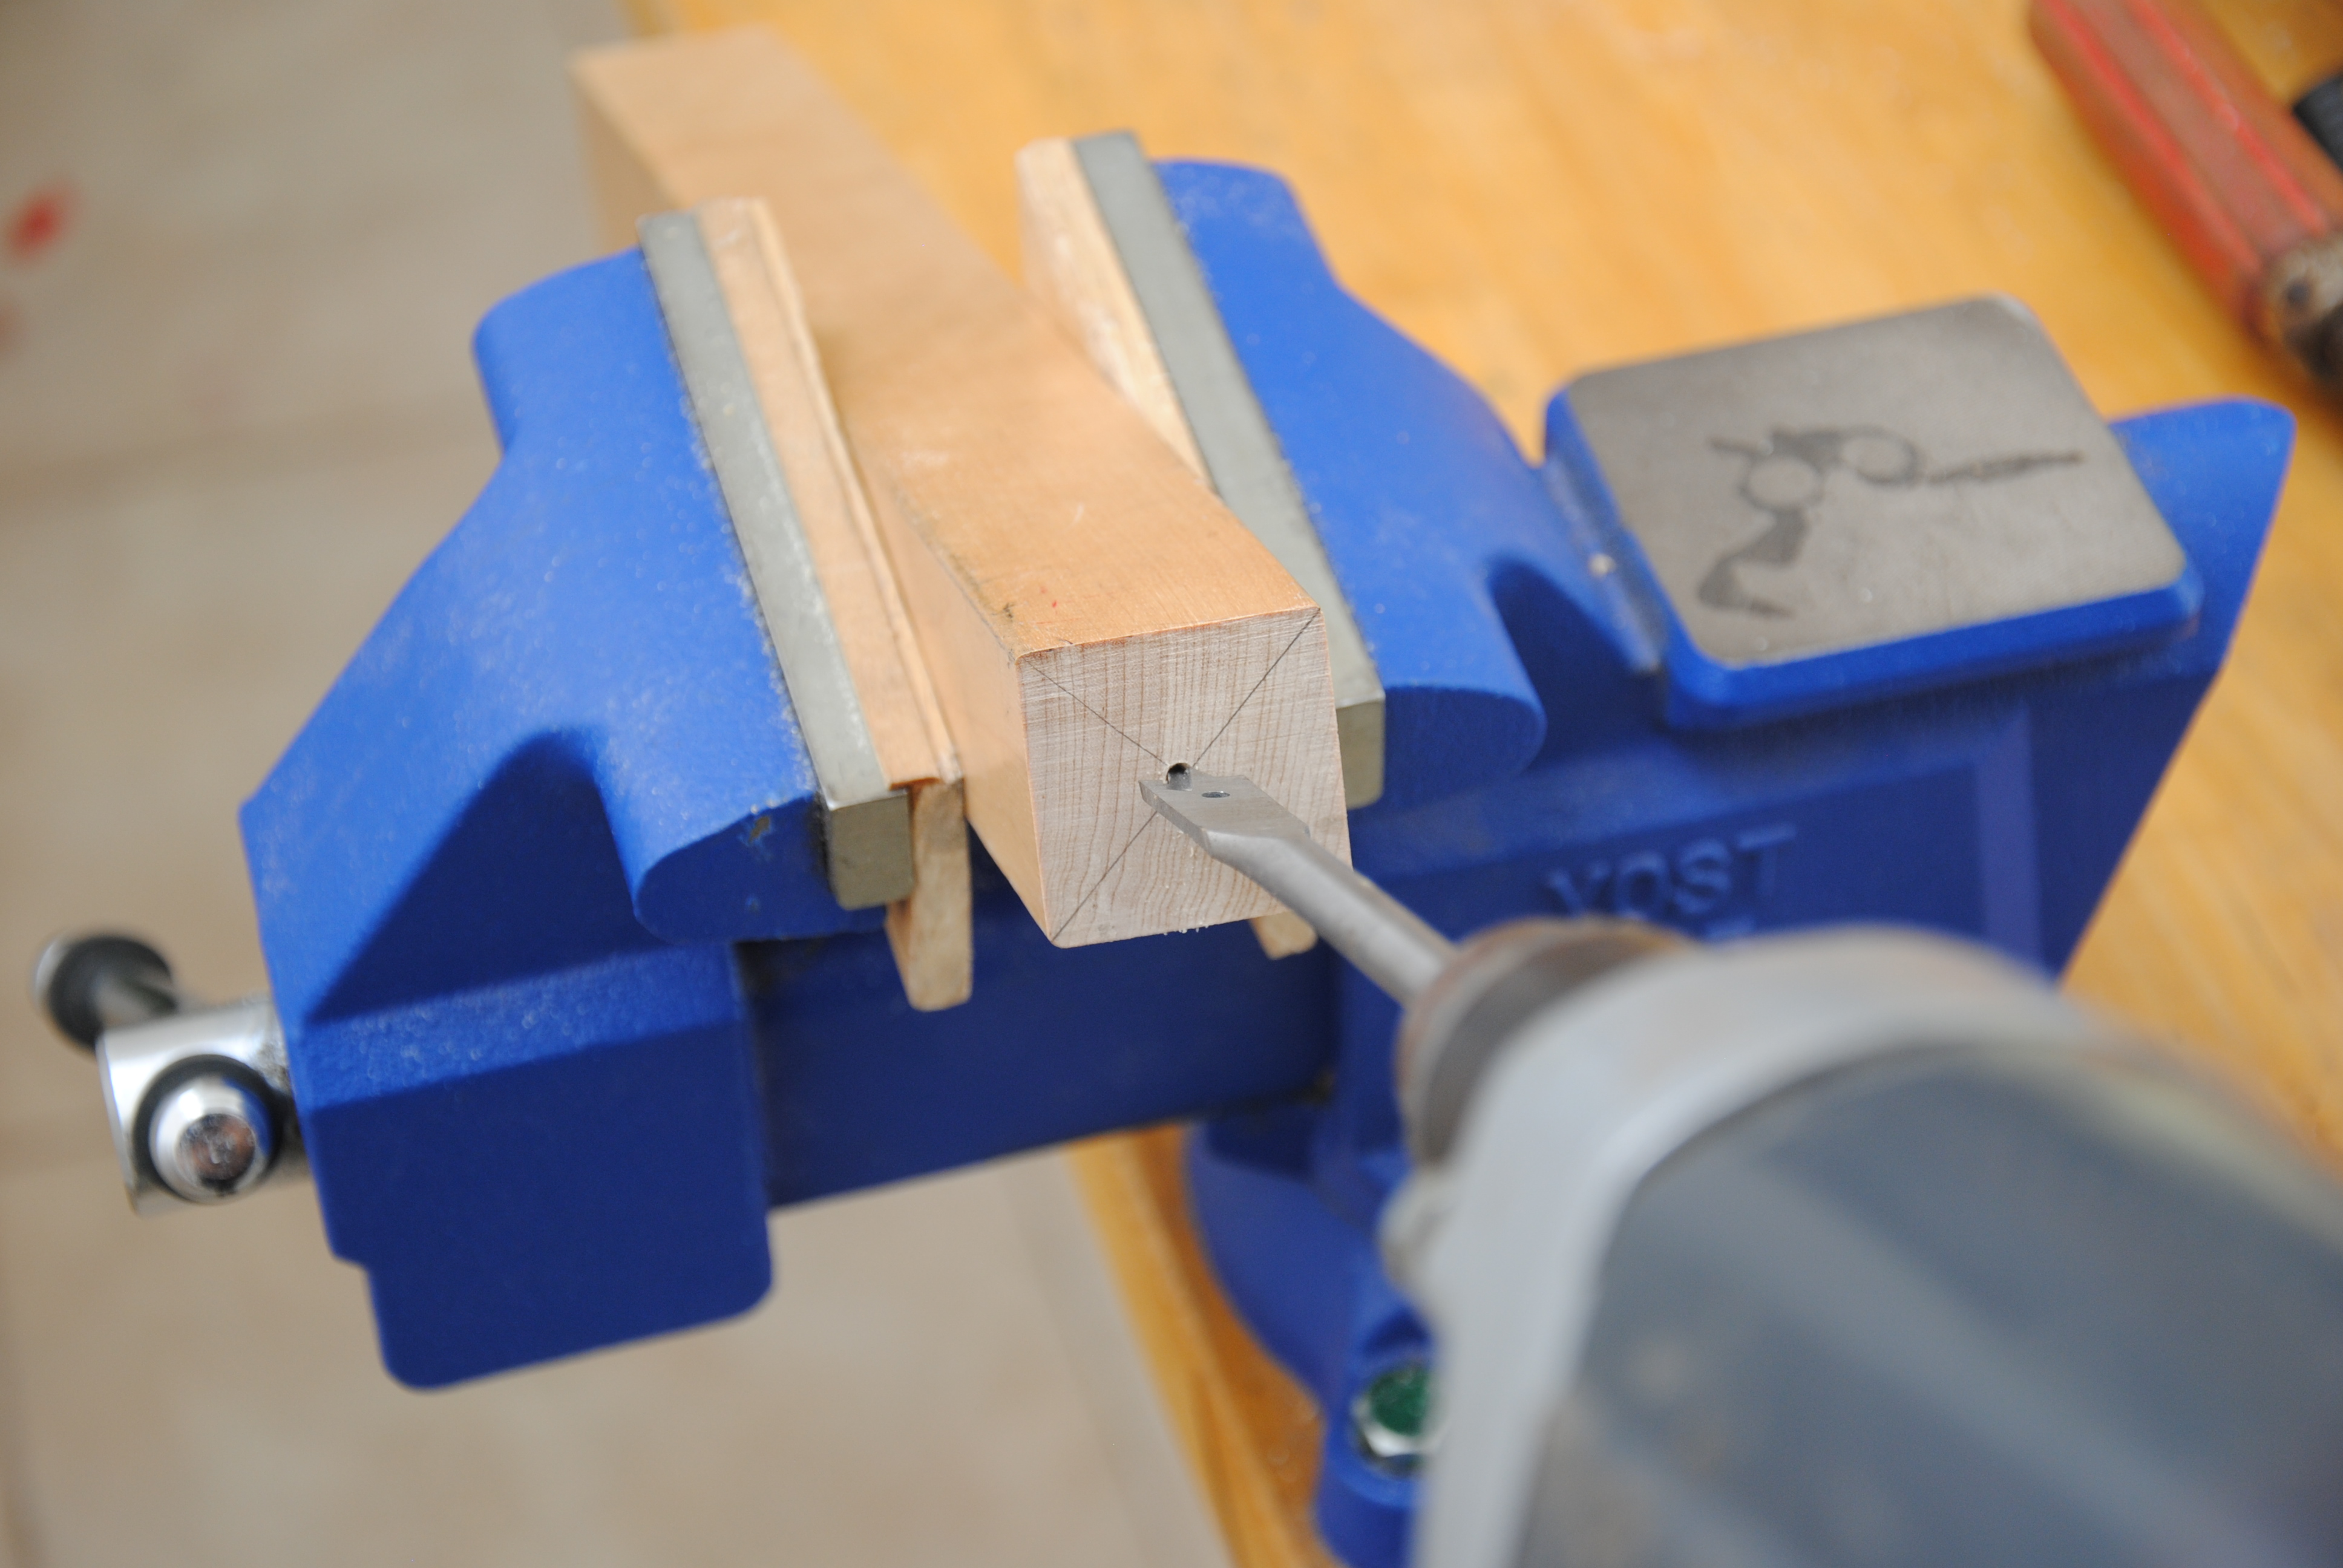 Picture of Hand Carving a Handle for the Threaded Rod, Sooooo Relaxing!